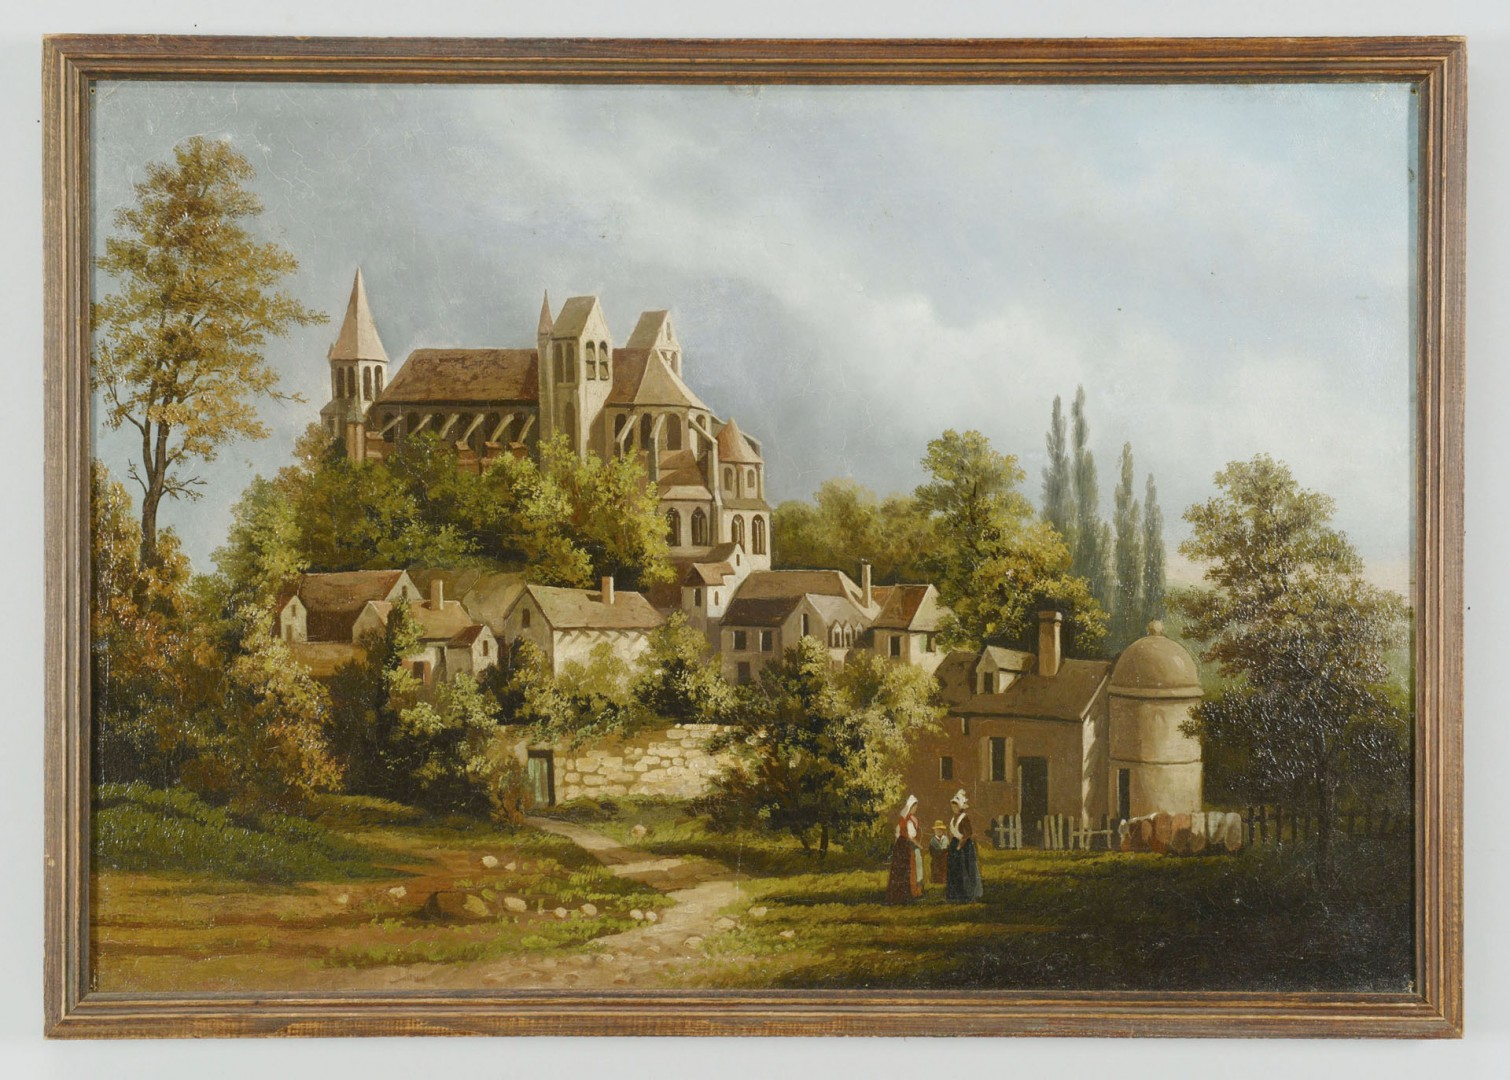 Lot 605: 19th Cent. Oil on Canvas European Village Scene